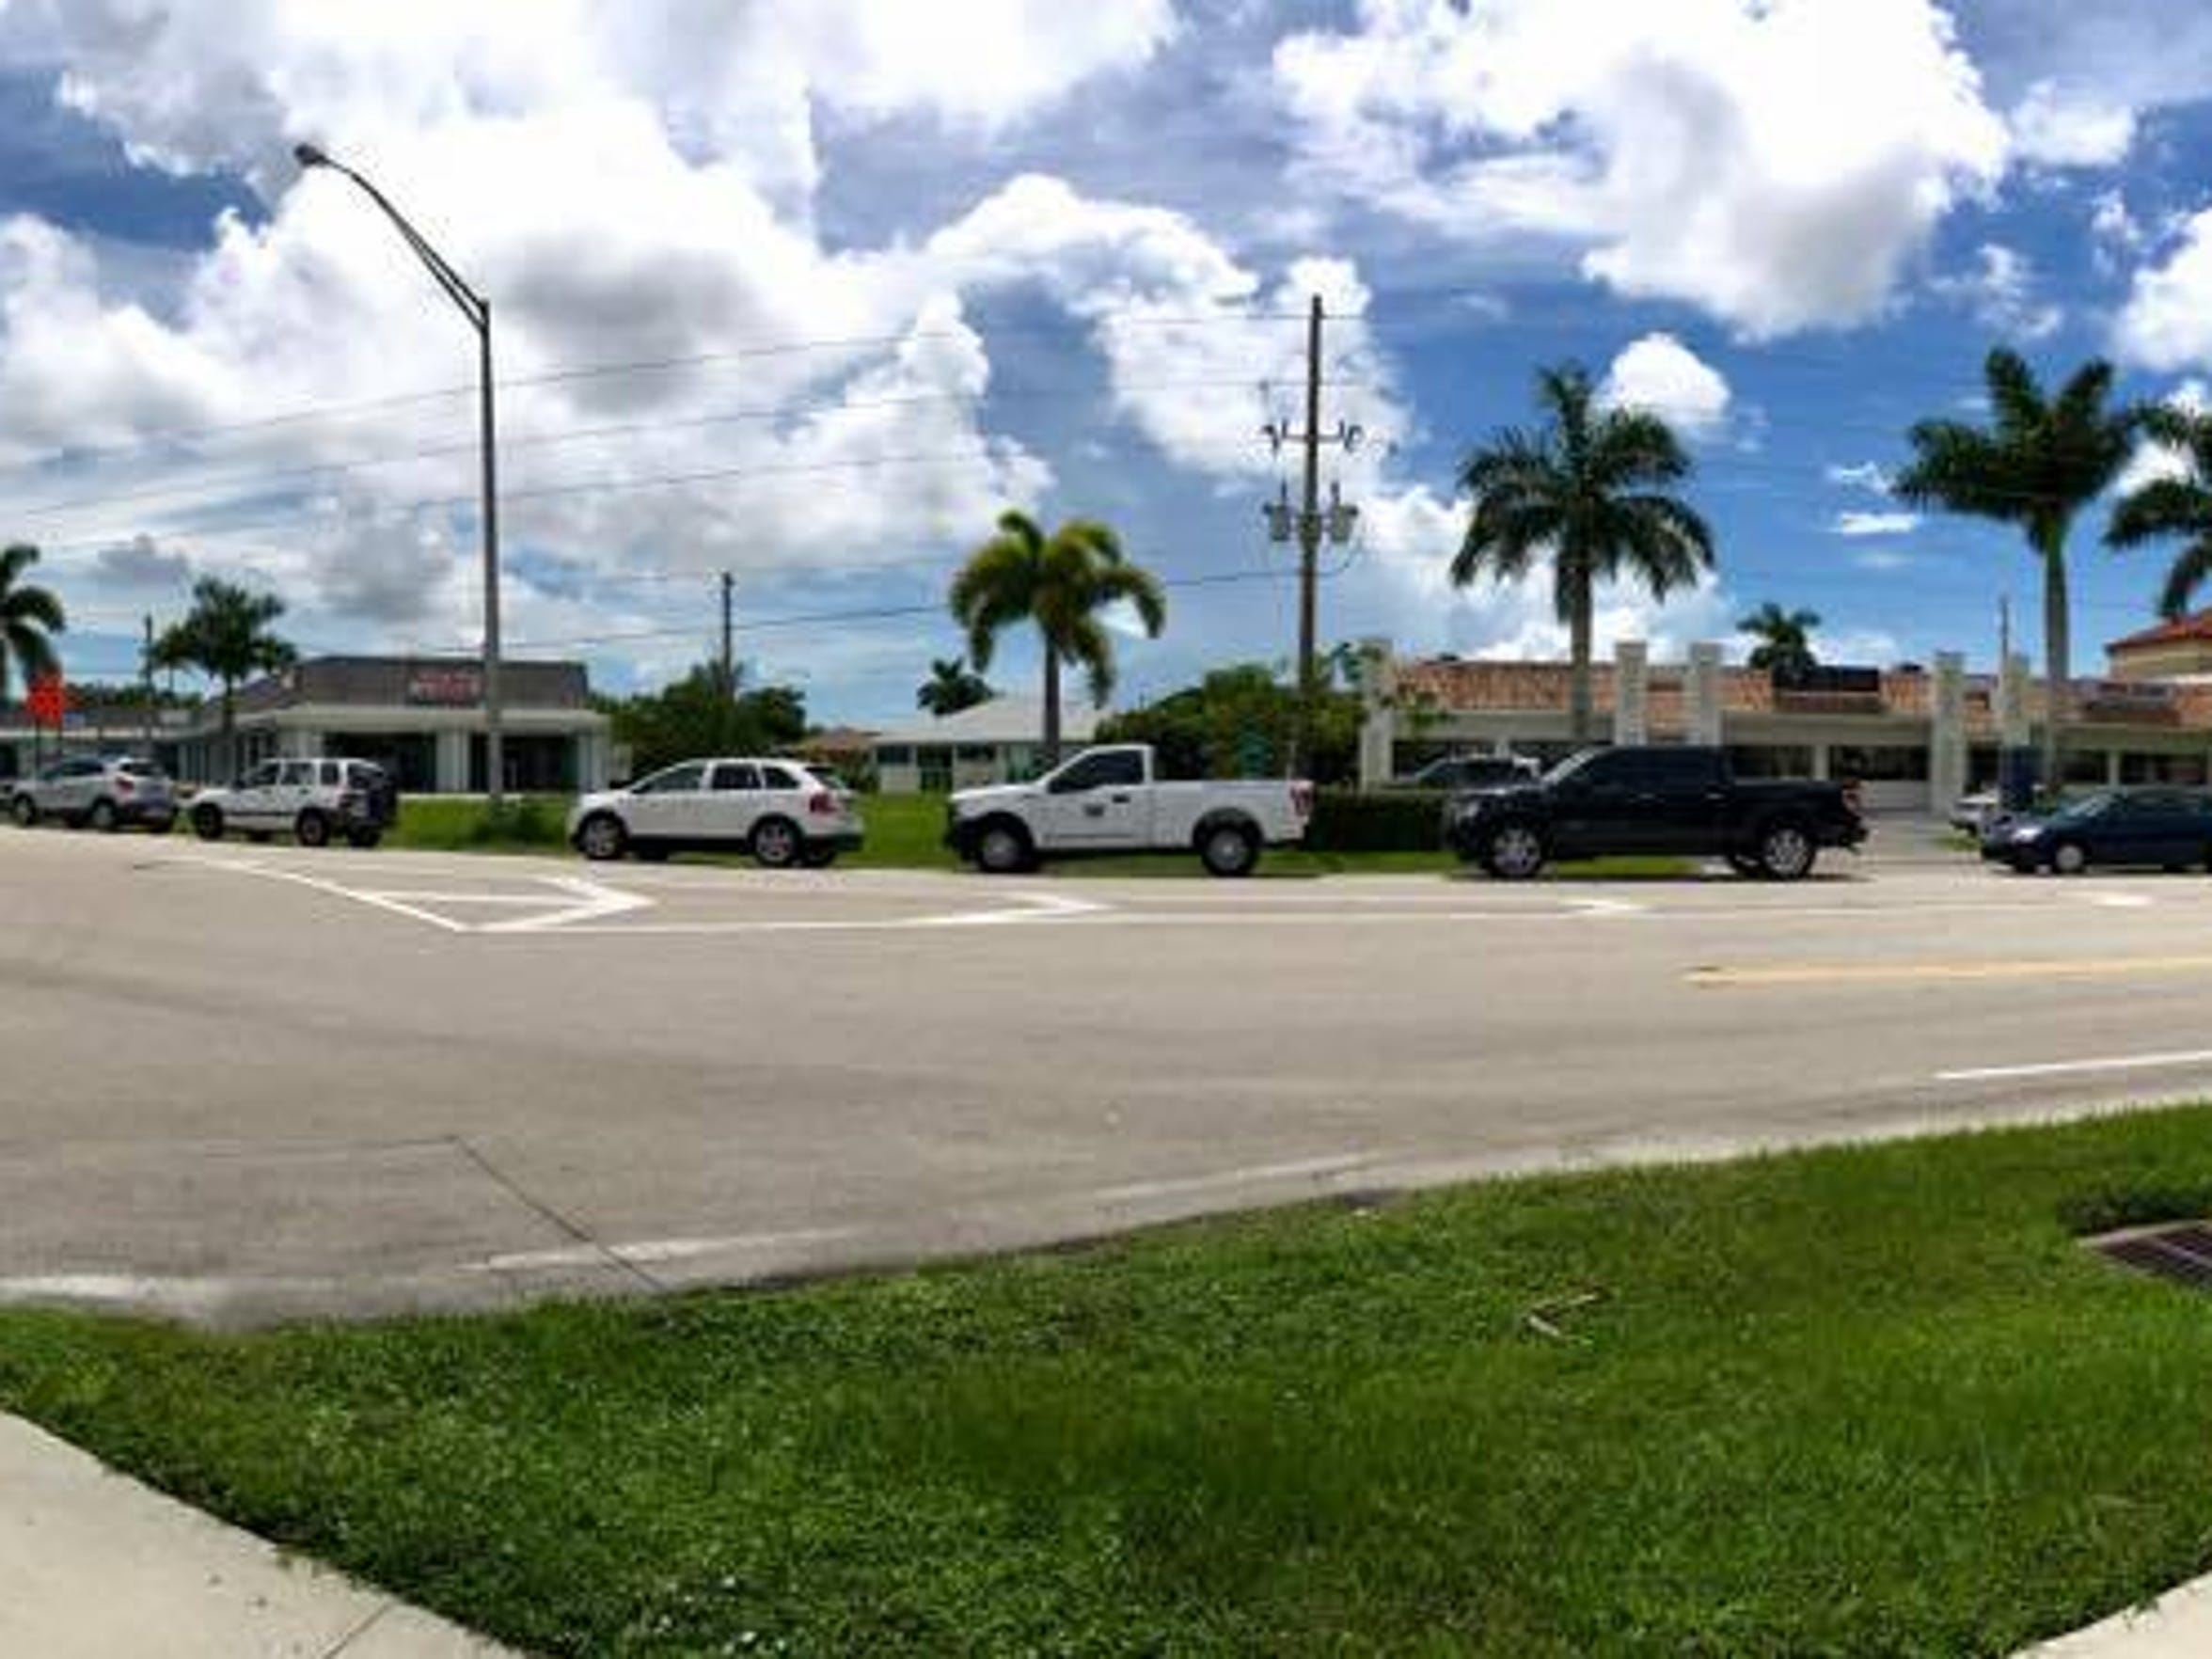 A panoramic photo of cars lined up down the street